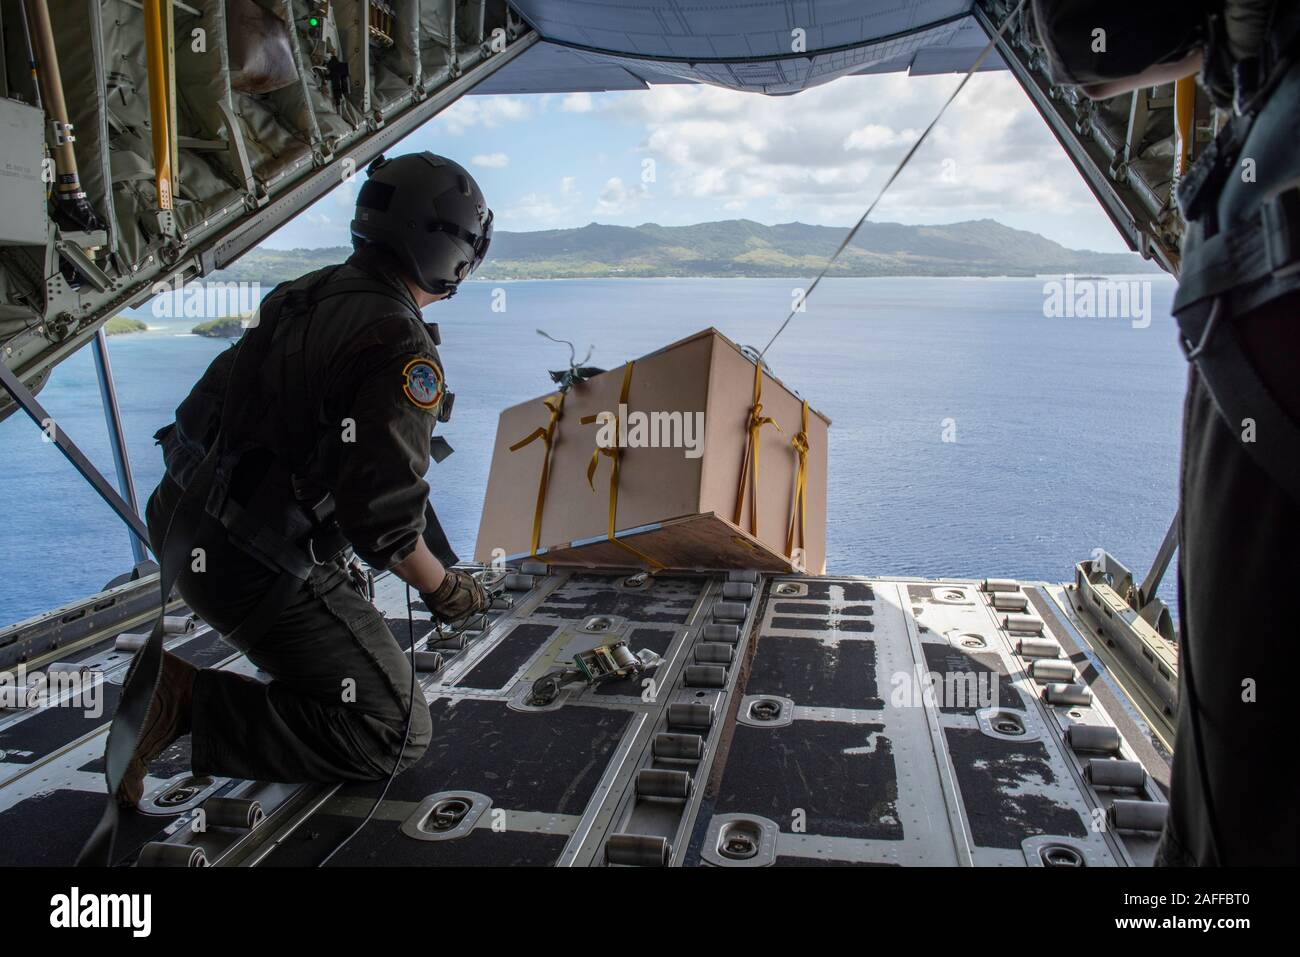 U.S. Air Force Tech. Sgt. Mario Montoya air drops a low-altitude bundle containing supplies and gifts out the back of a USAF C-130 Super Hercules aircraft December 5, 2019 over Micronesia. Over the past 68-years, the U.S. Air Force Operation Christmas Drop has been providing critical supplies to 56 Micronesian islands, impacting approximately 20,000 people across an 1.8 million square nautical miles area. Stock Photo